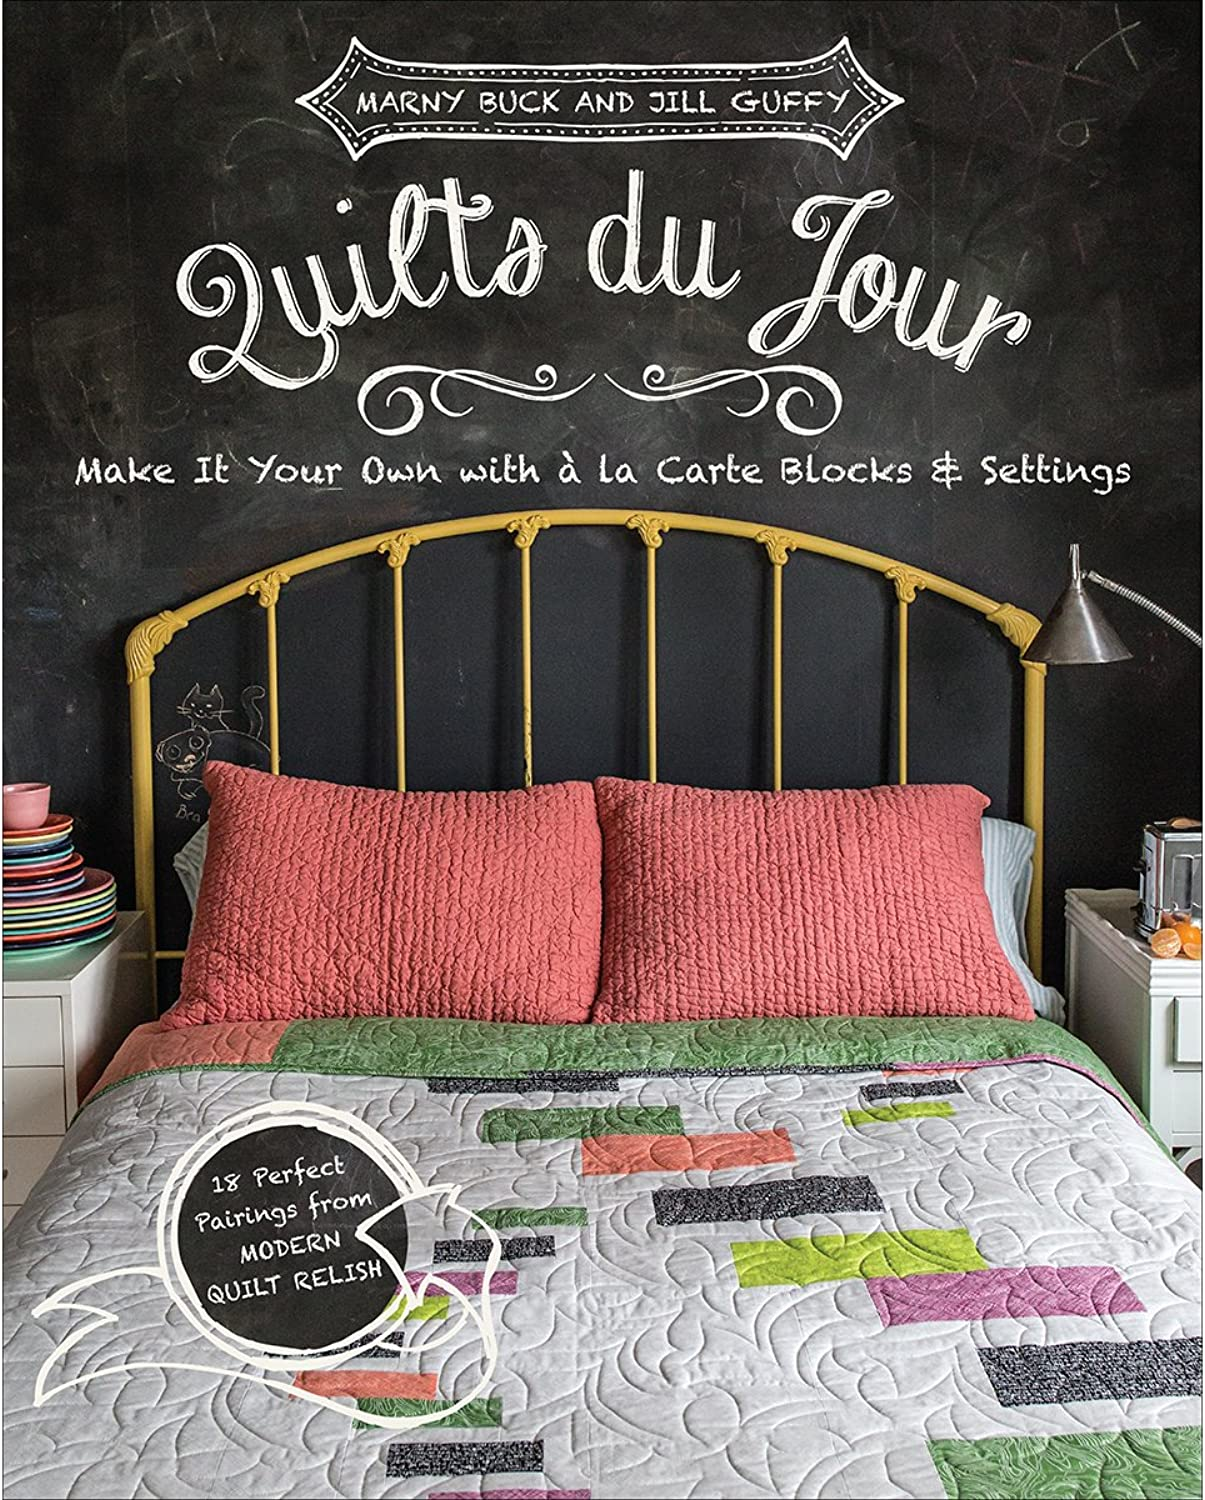 C & T Publishing Stash Books-Quilts Books-Quilts Books-Quilts Du Jour, andere, Mehrfarbig B0179M4P4S | Feinbearbeitung  fcb631